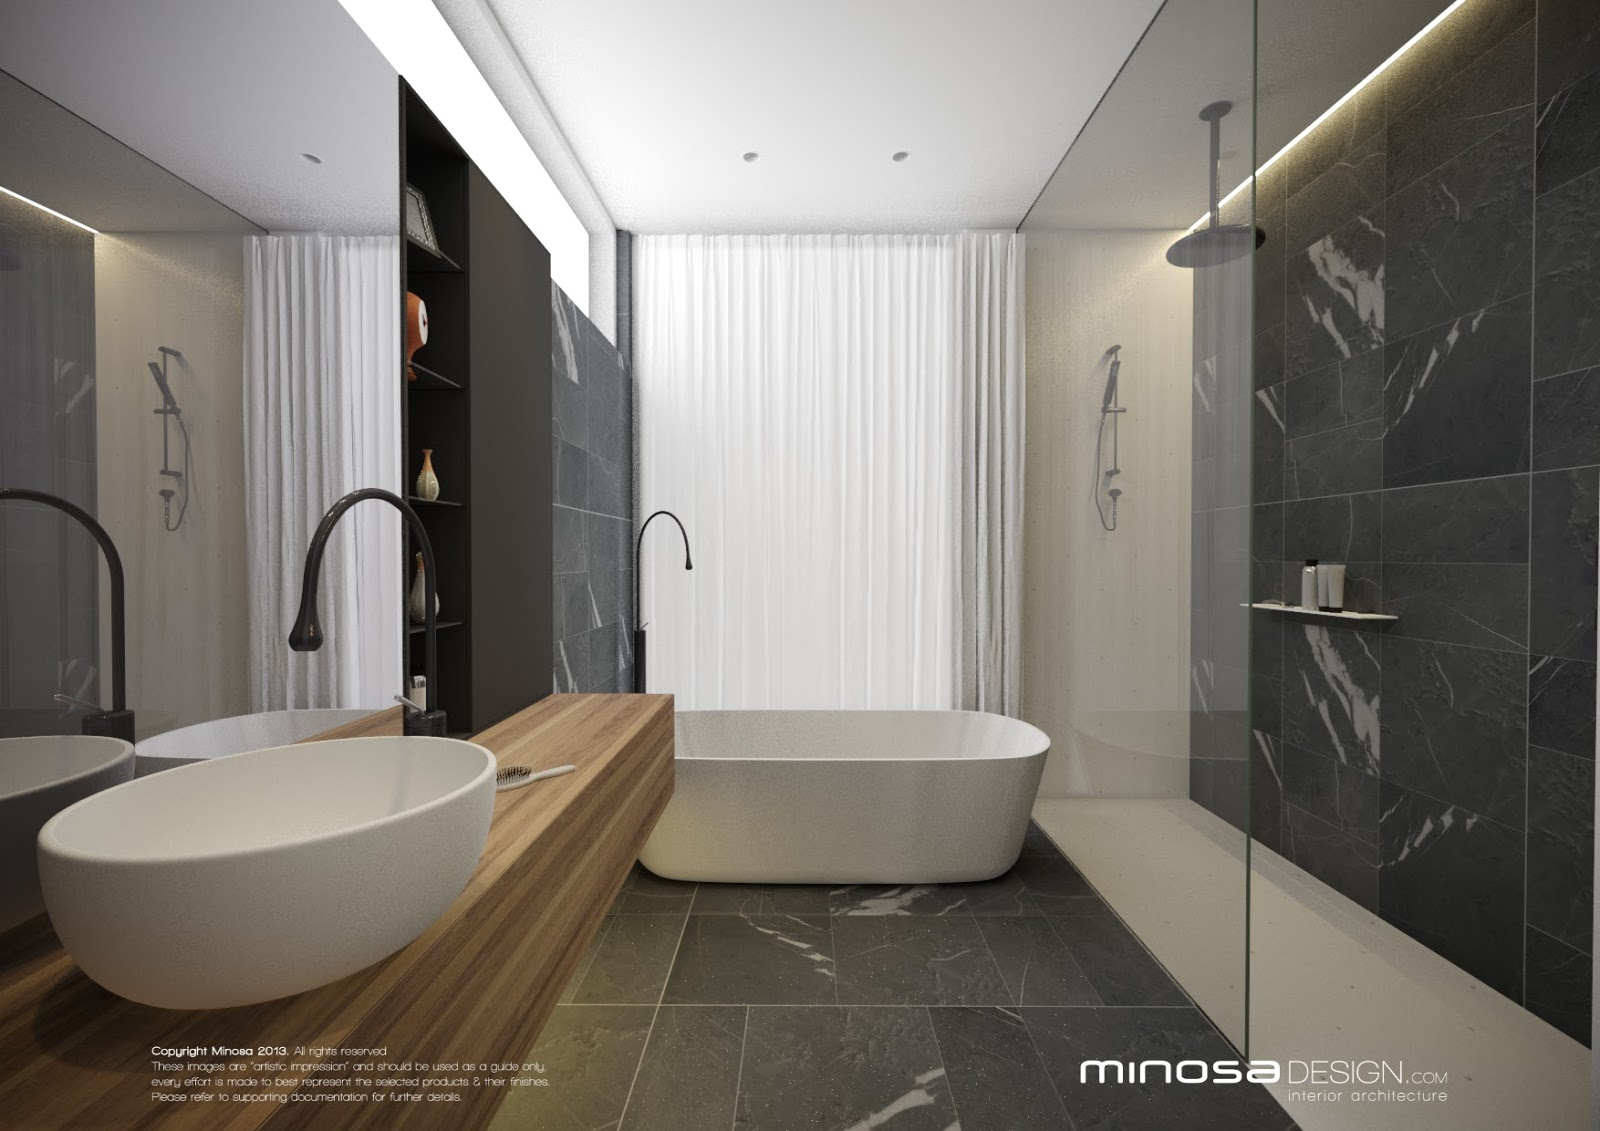 Minosa modern bathroom design to share for Modern bathroom designs